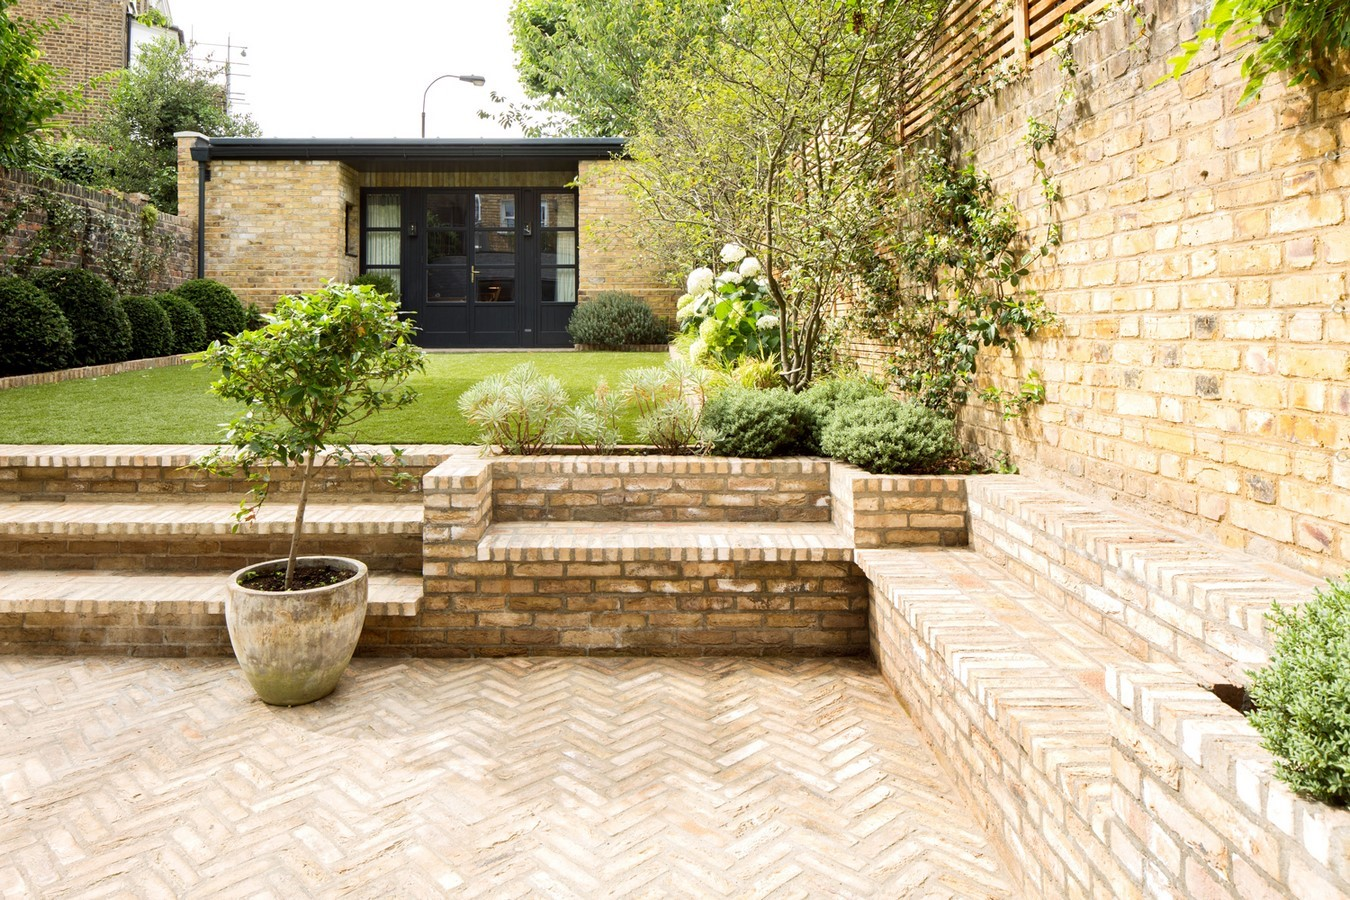 50 Ideas and Tips for Landscaping - Sheet26